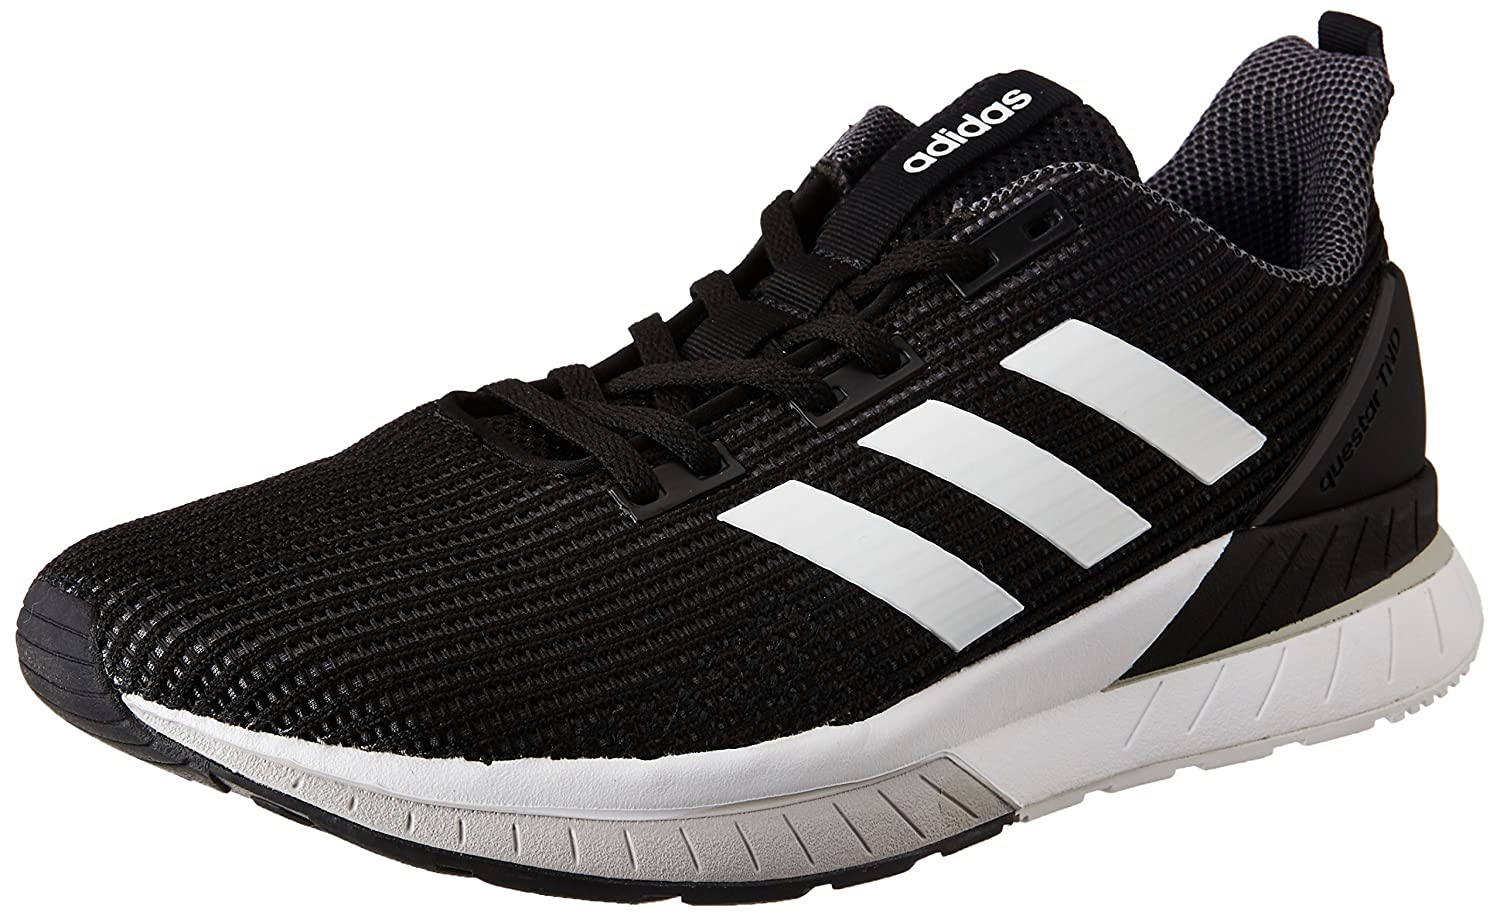 fc8af8971 Adidas Men s Questar Tnd Running Shoes  Buy Online at Low Prices in India -  Amazon.in